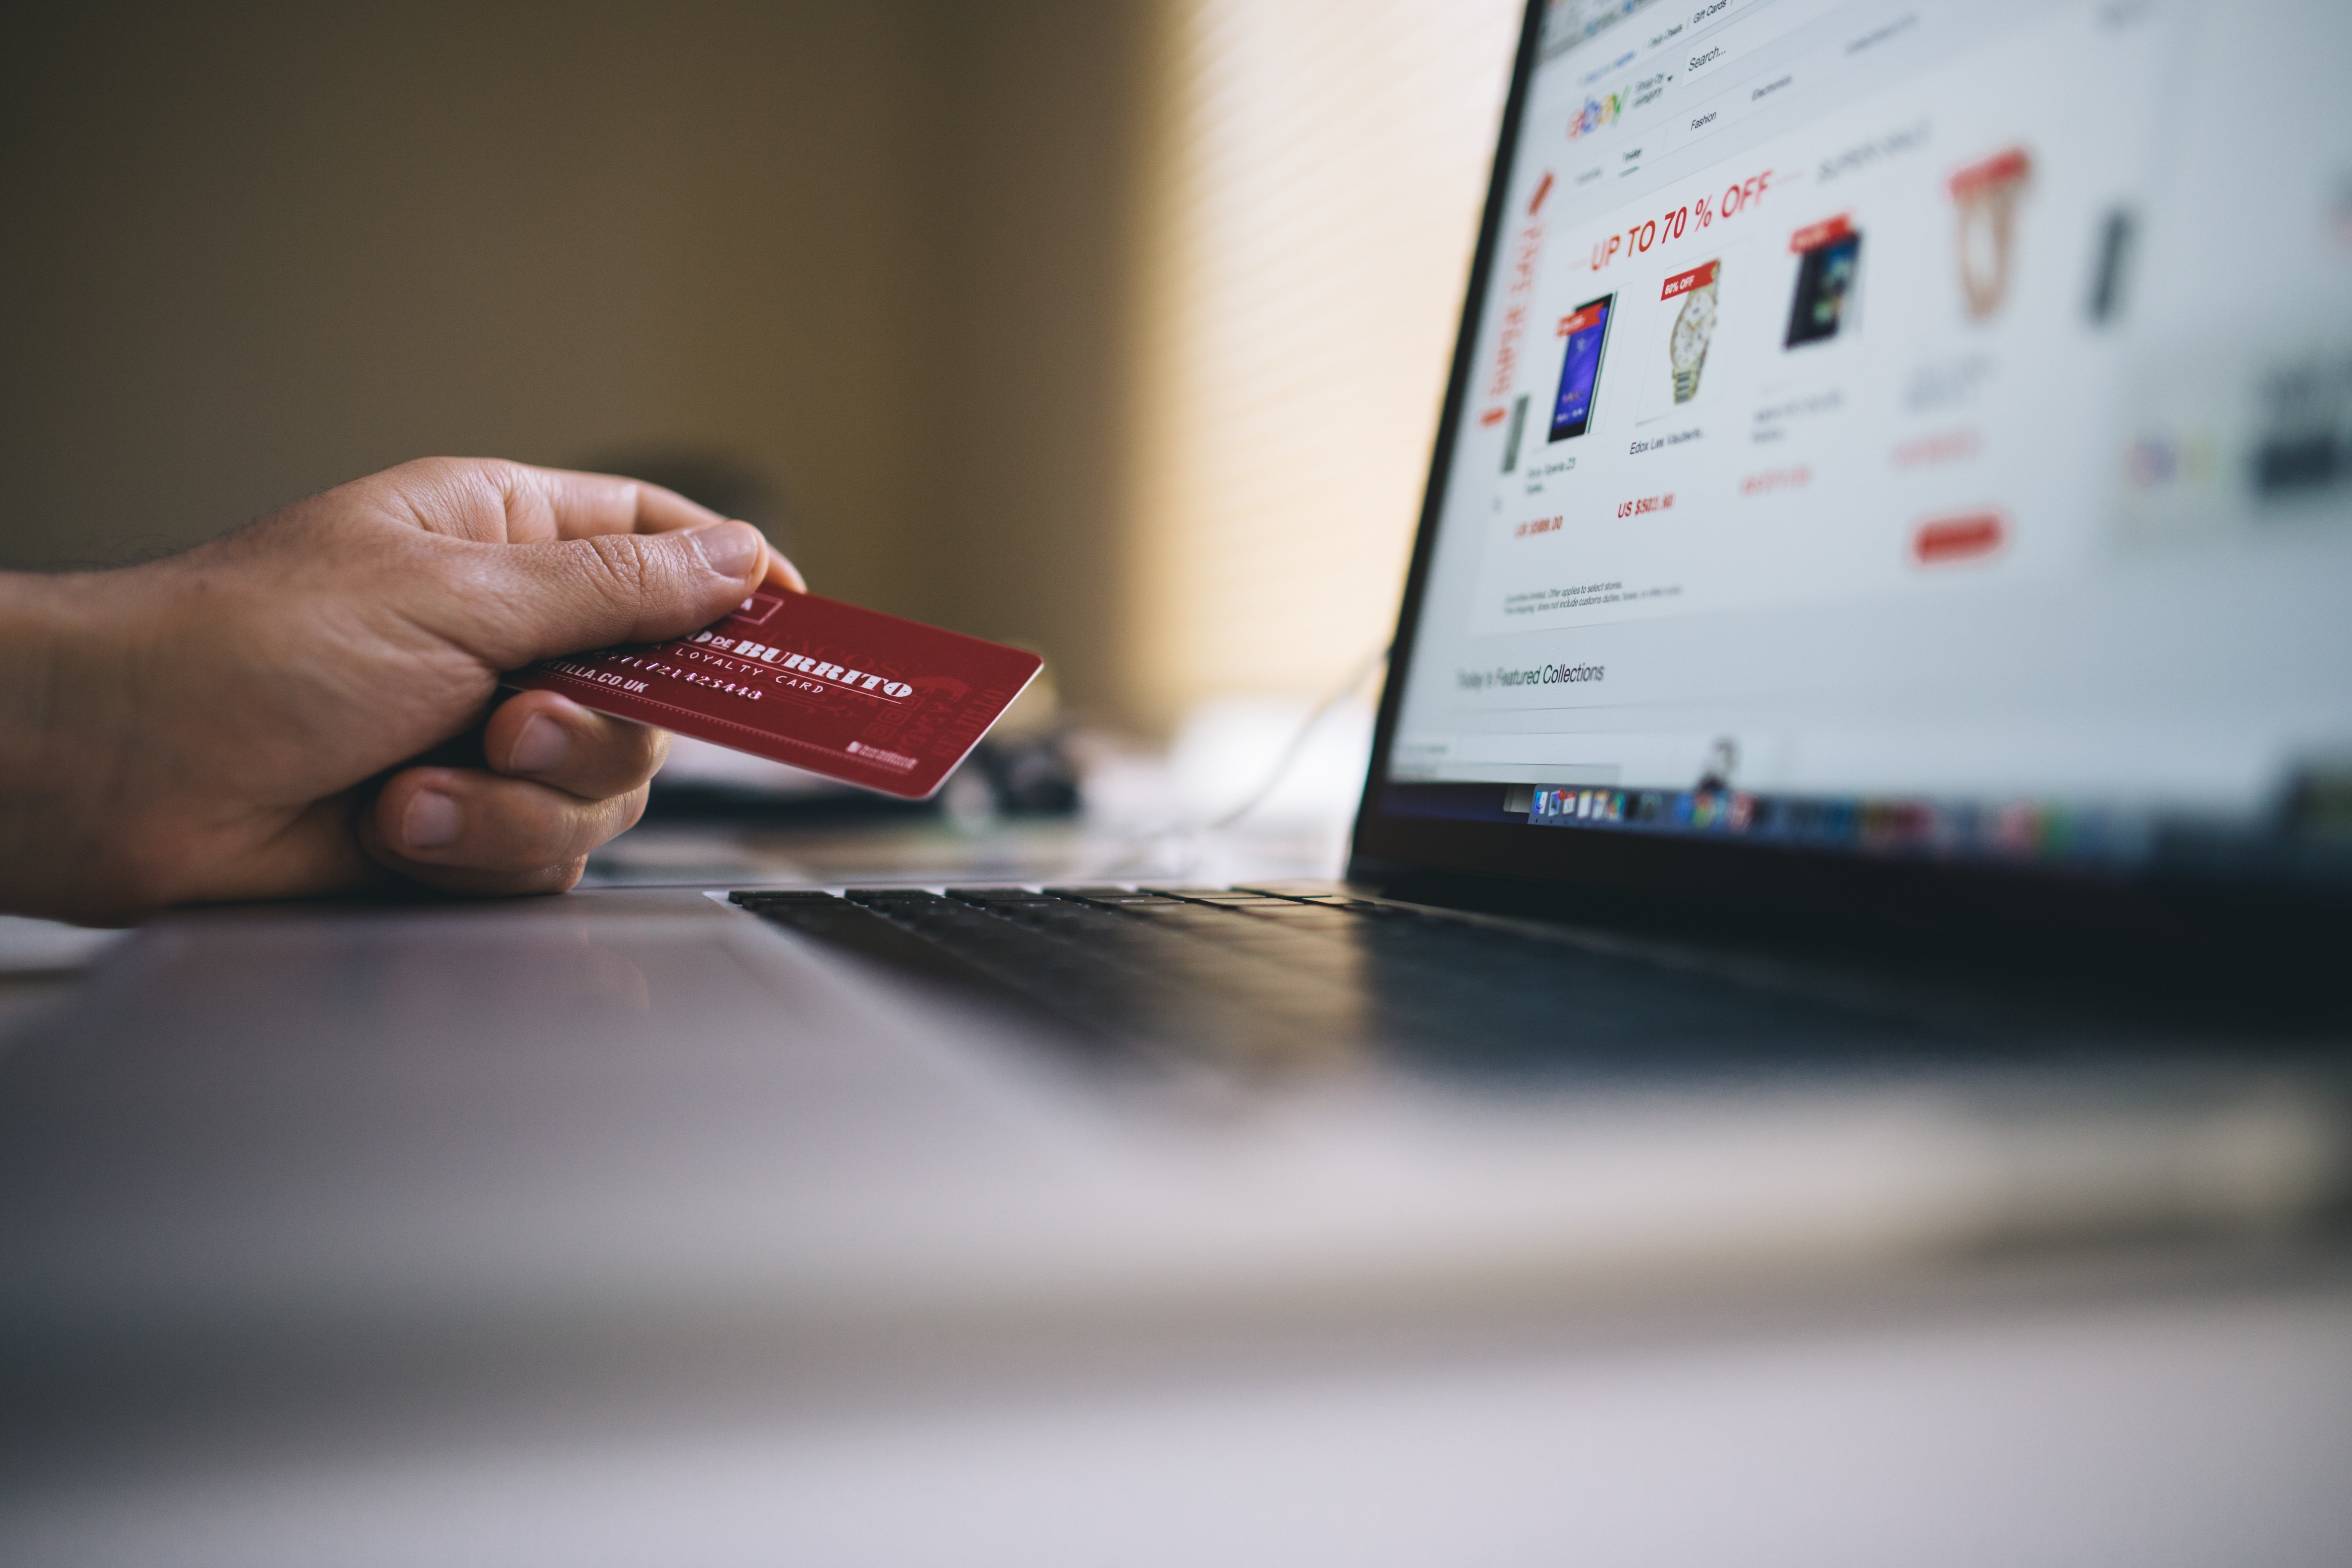 Using artificial intelligence in ecommerce can help create a more personalized shopping experience.